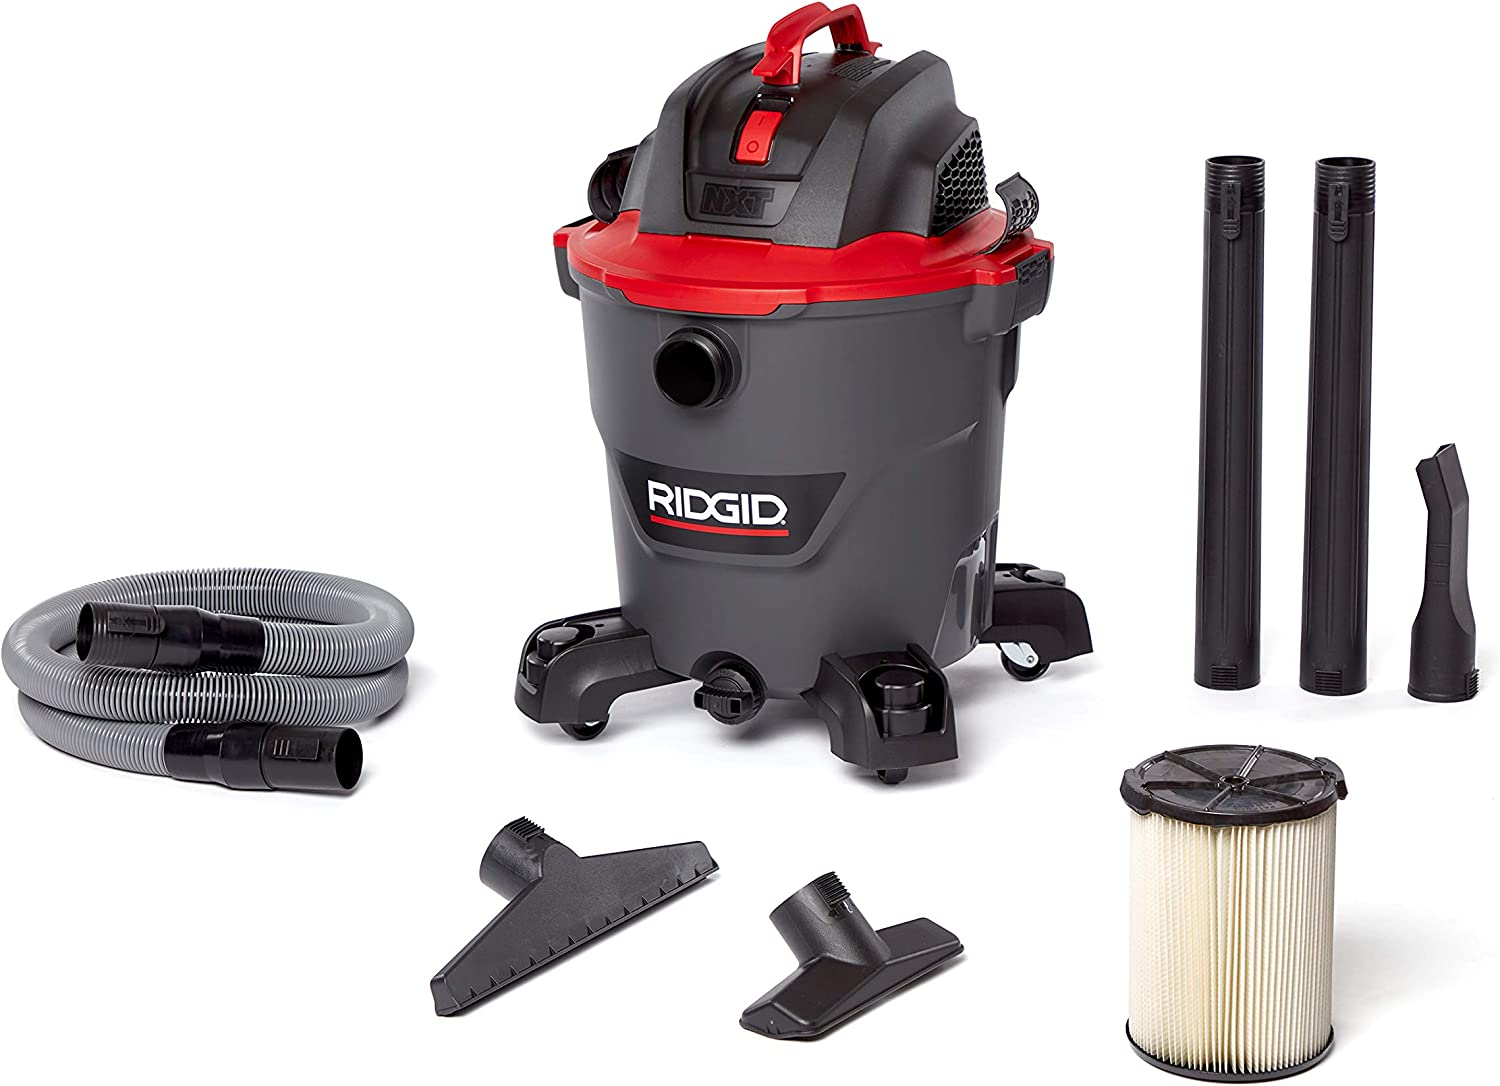 Ridgid 62703 Red 12 gallon RT1200 Wet/Dry Vacuum